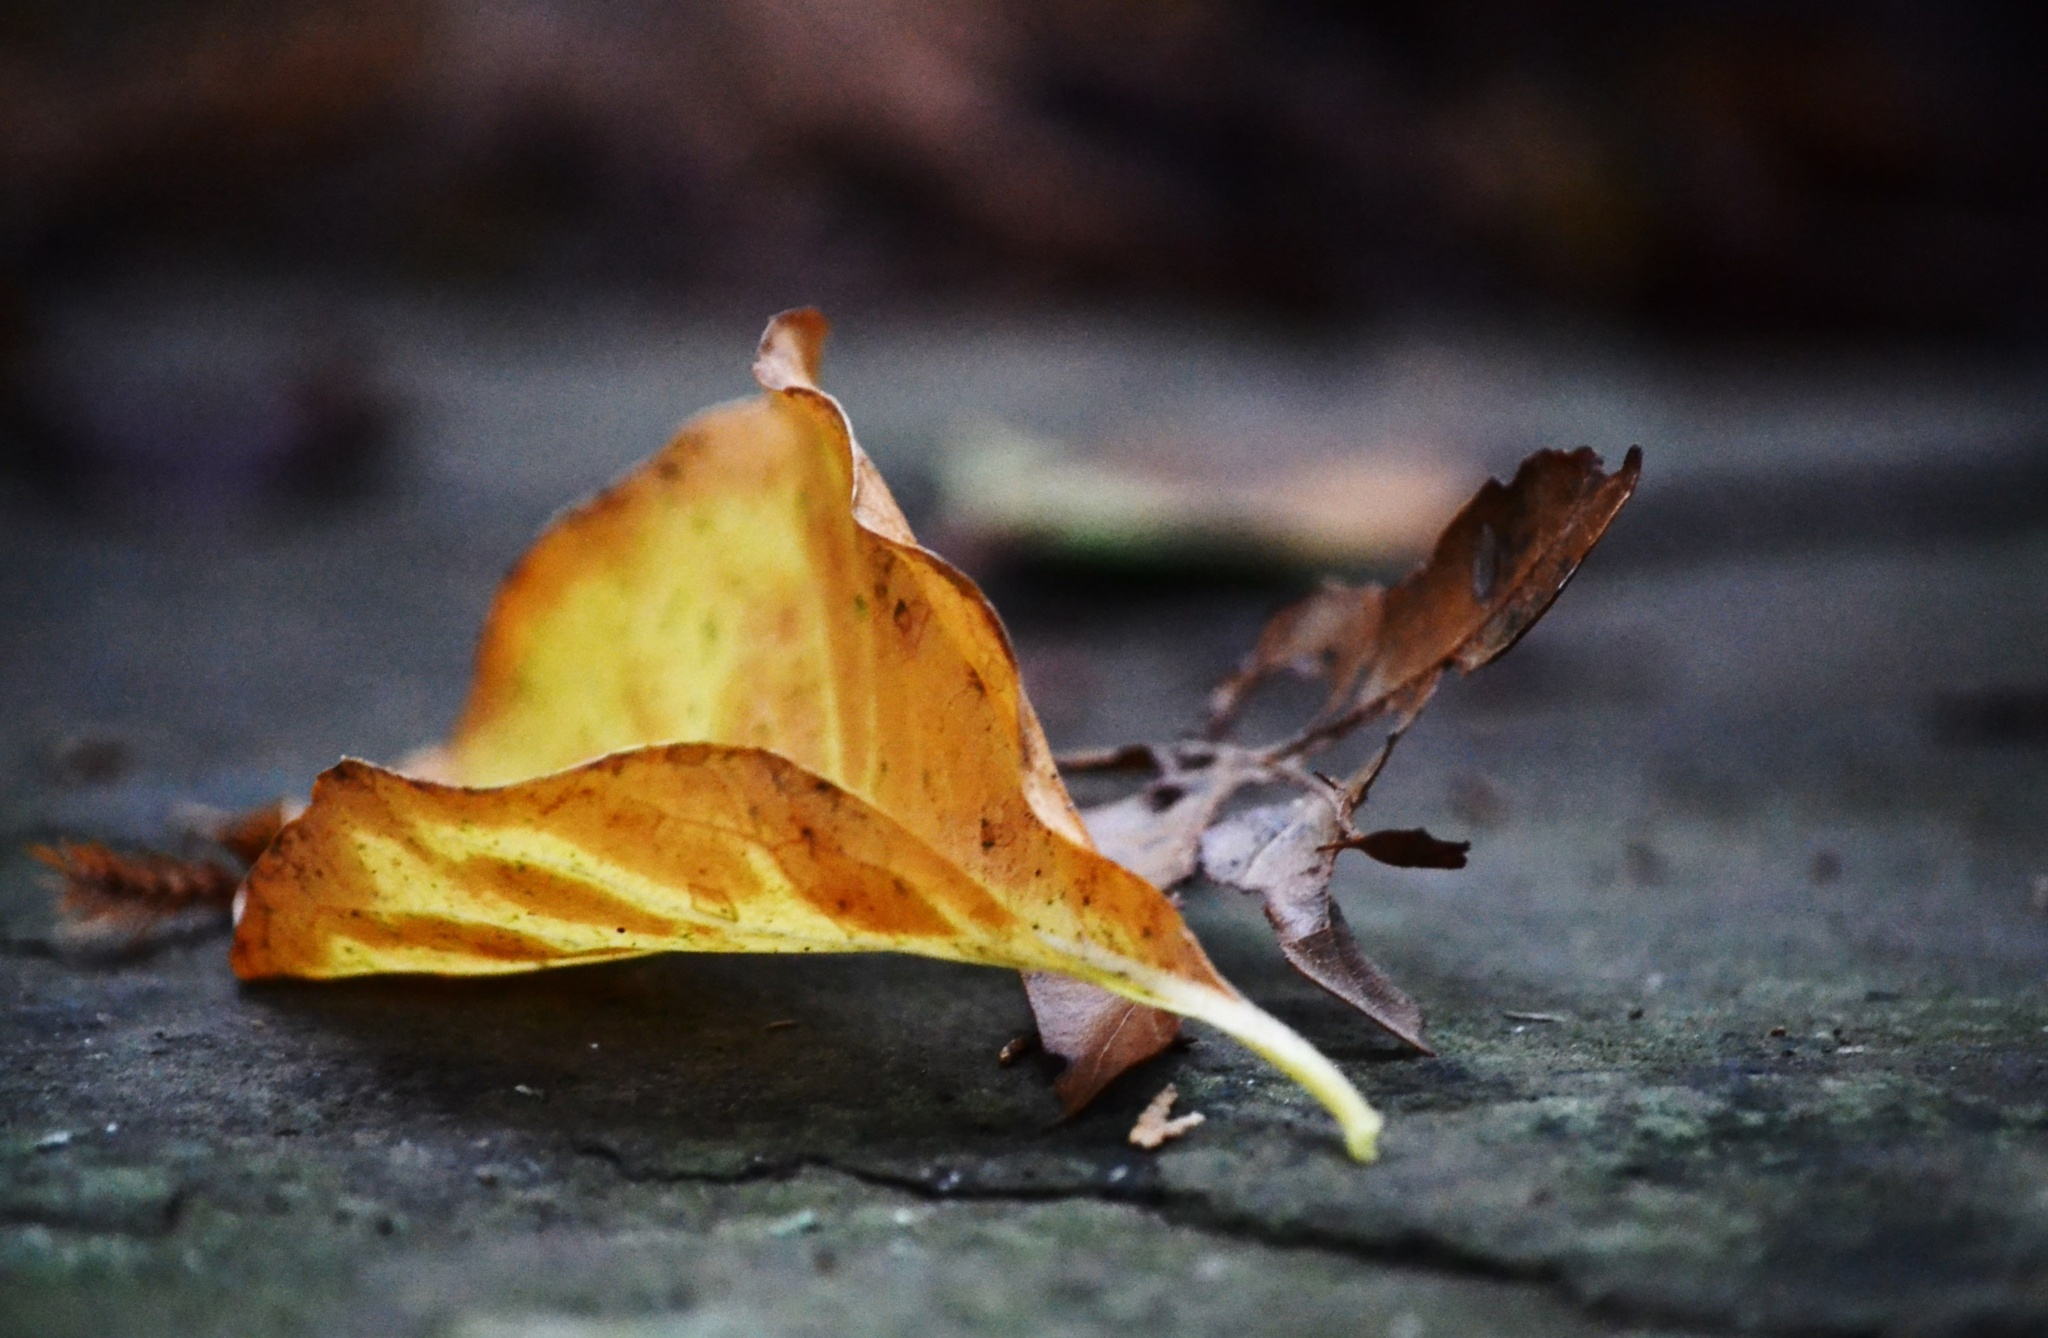 Two autum leaf's by kathycamirephotogallery